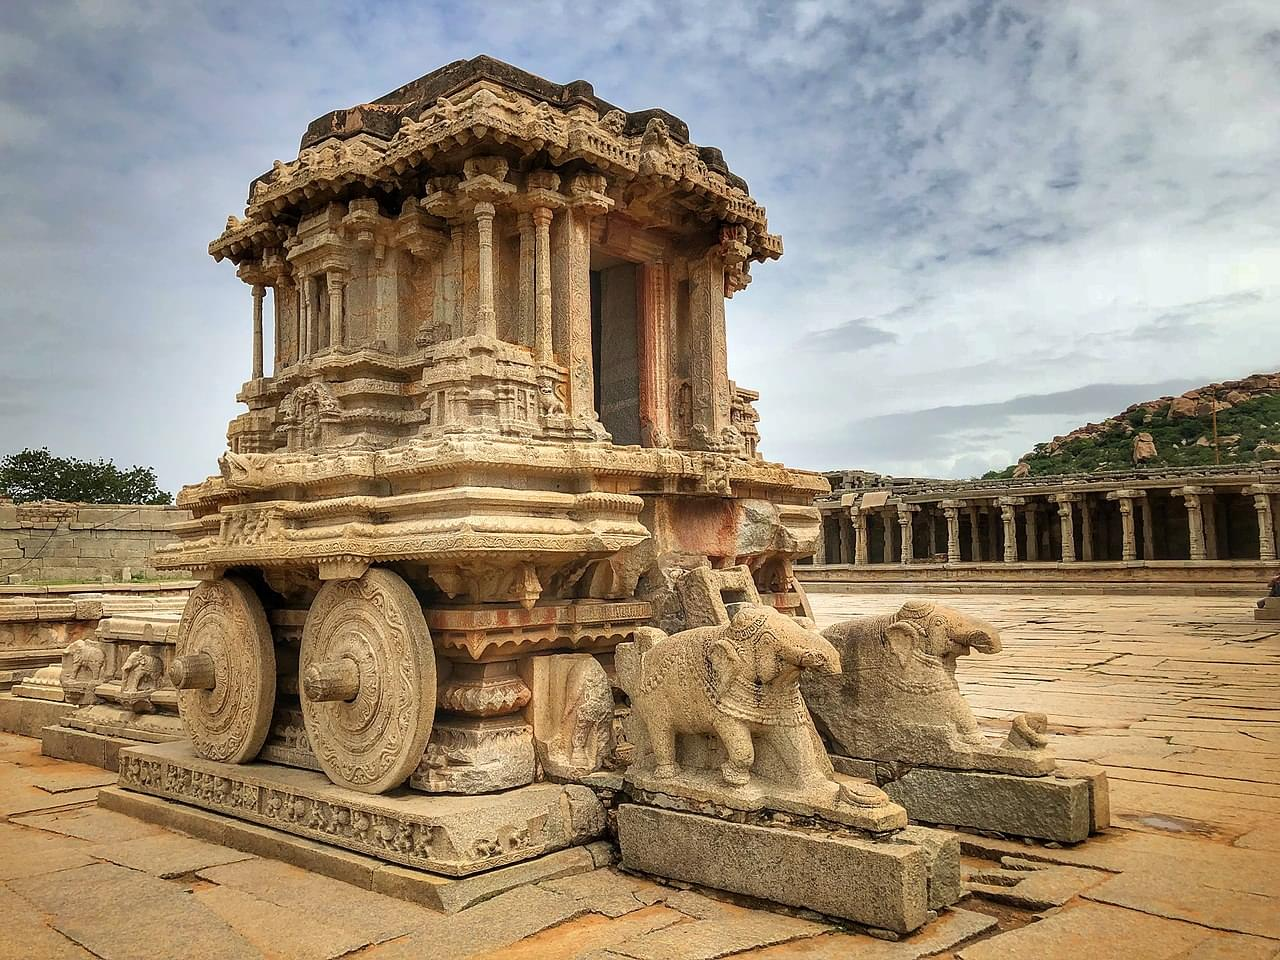 8-Night-9-Days-Hampi,-Chikmagalur,-Coorg-and-Mysore-Tour-Package-JustWravel-1597395397-4.jpg